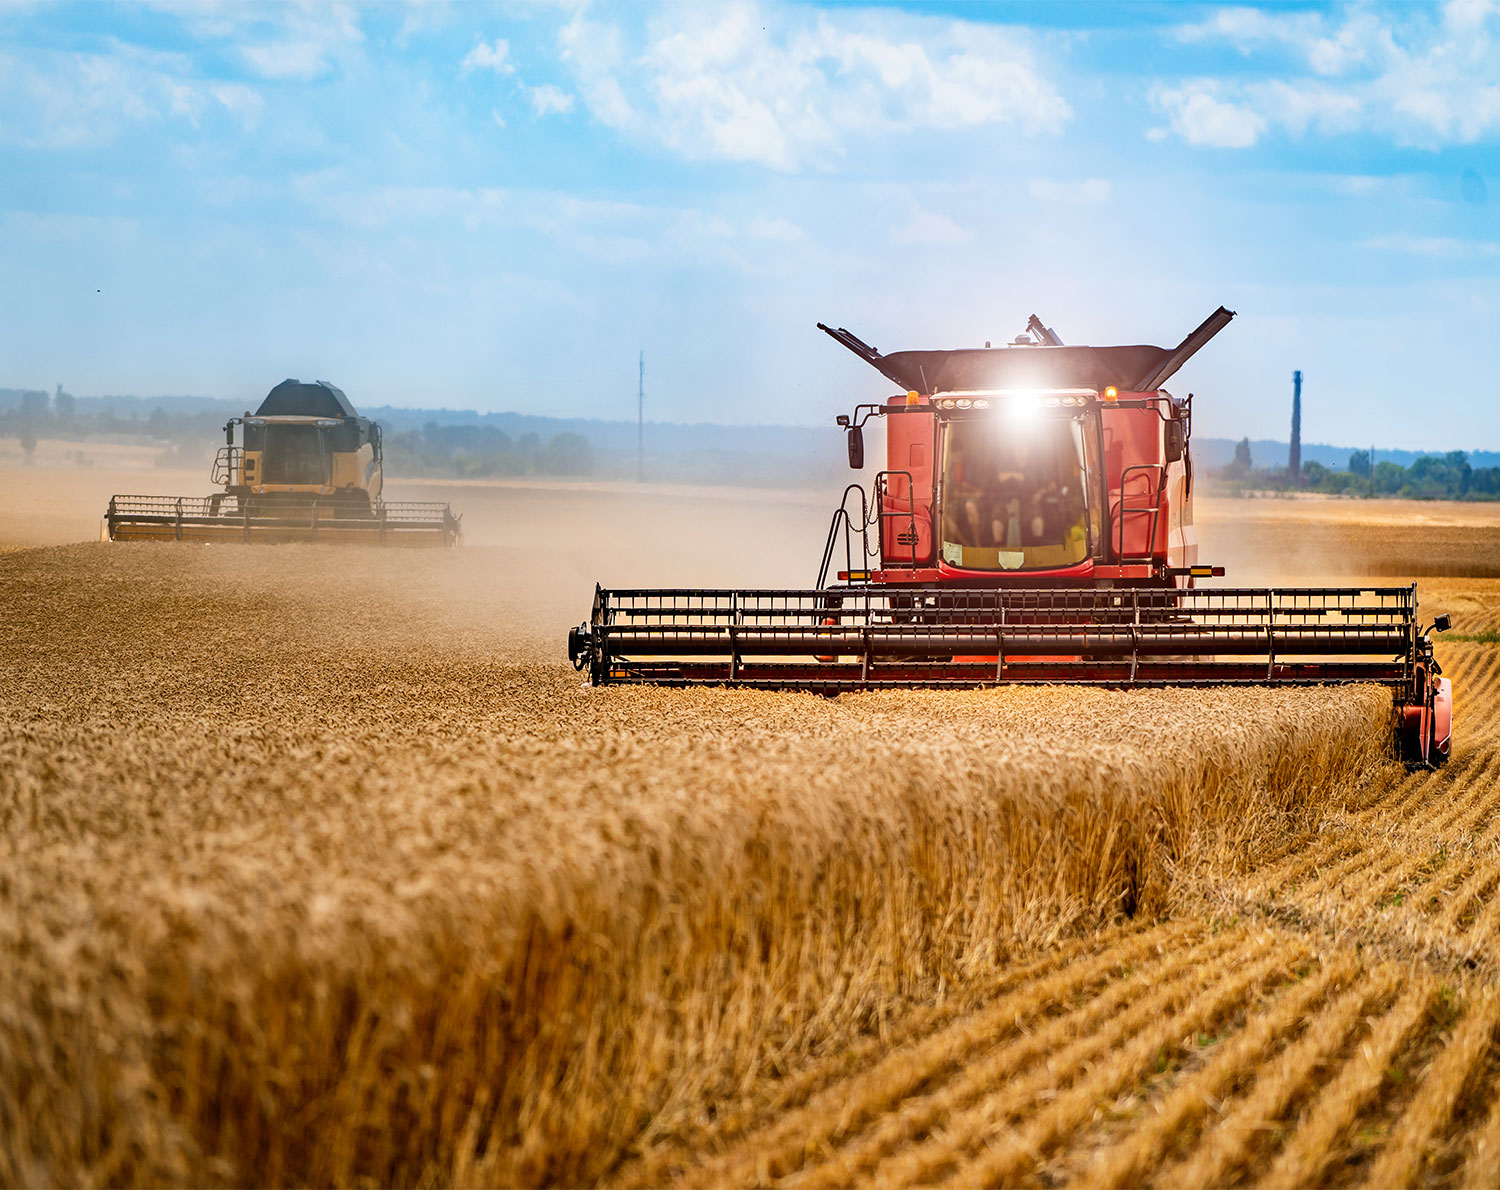 Tractor driving amongst wheat field - FX products for business. Whether it's a FX spot contract a foreign currency forward contract or a tailored currency strategy, RationalFX provide all the tools you need for cost-effective and convenient business fx payments and transfers.